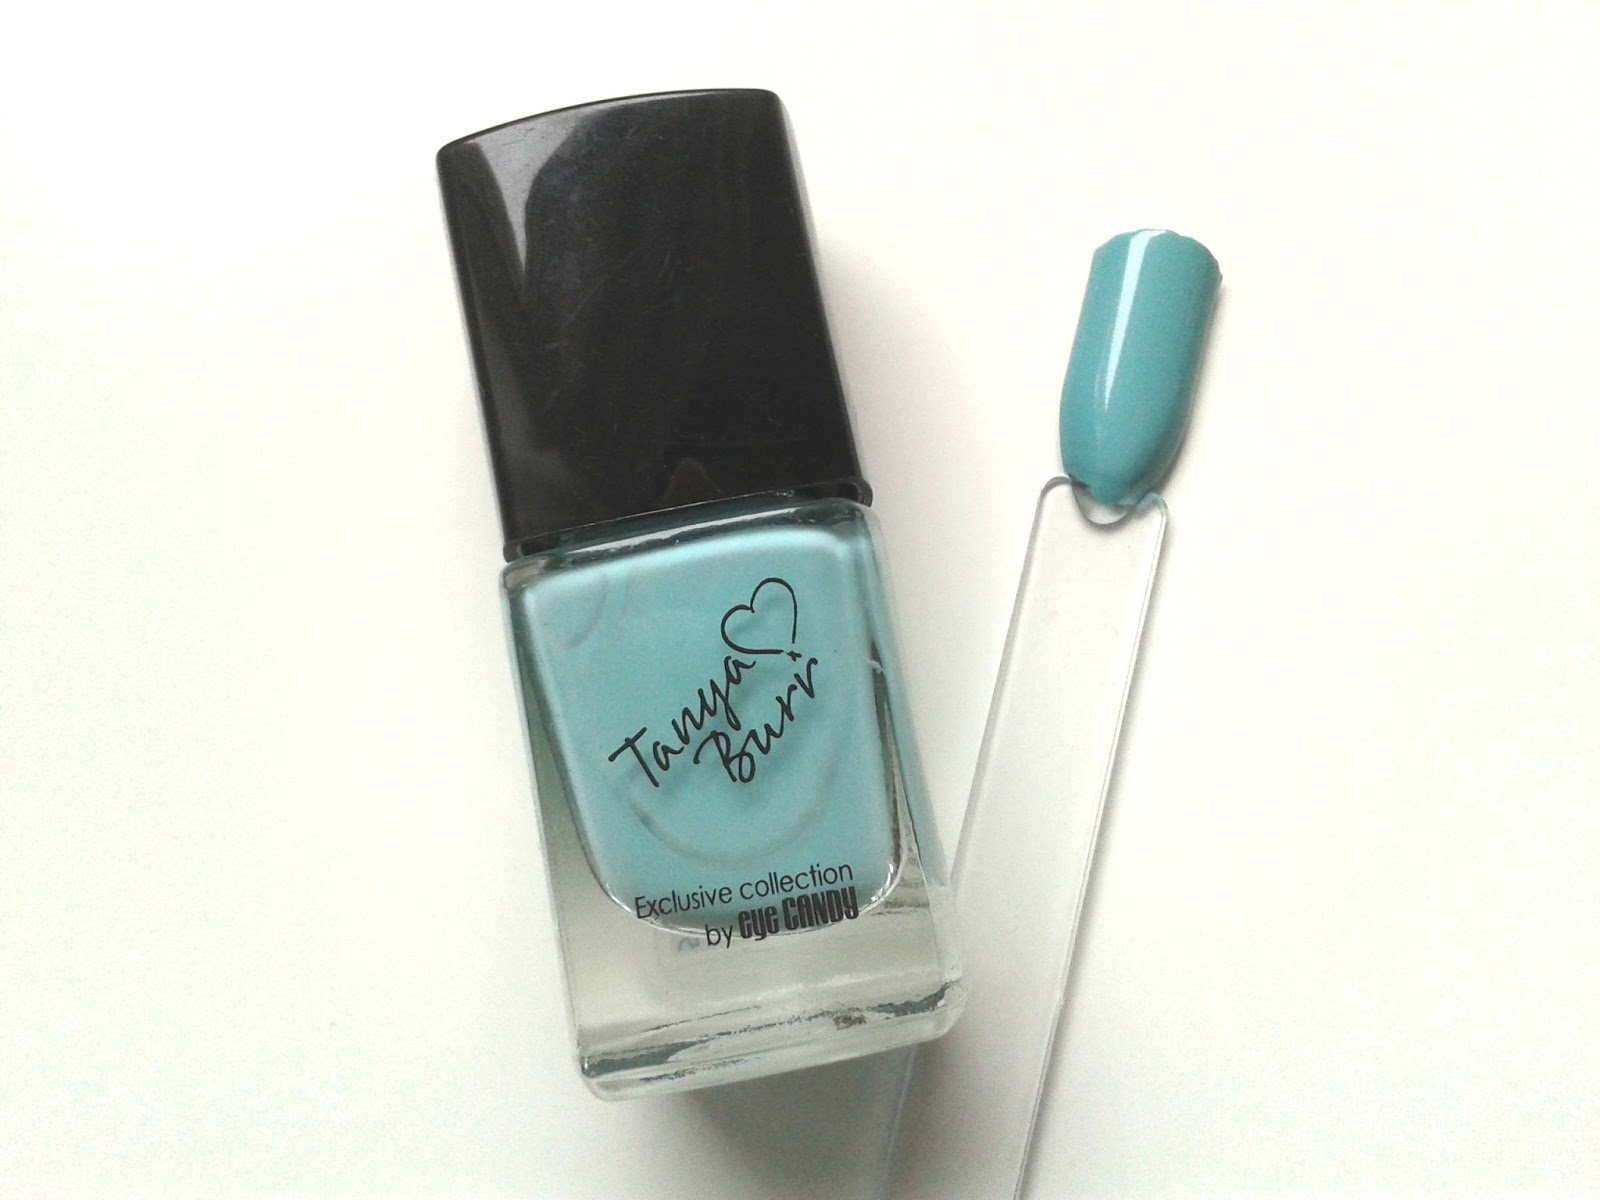 Tanya Burr Lips and Nails Nail Polishes Review Swatch Swatches little duck